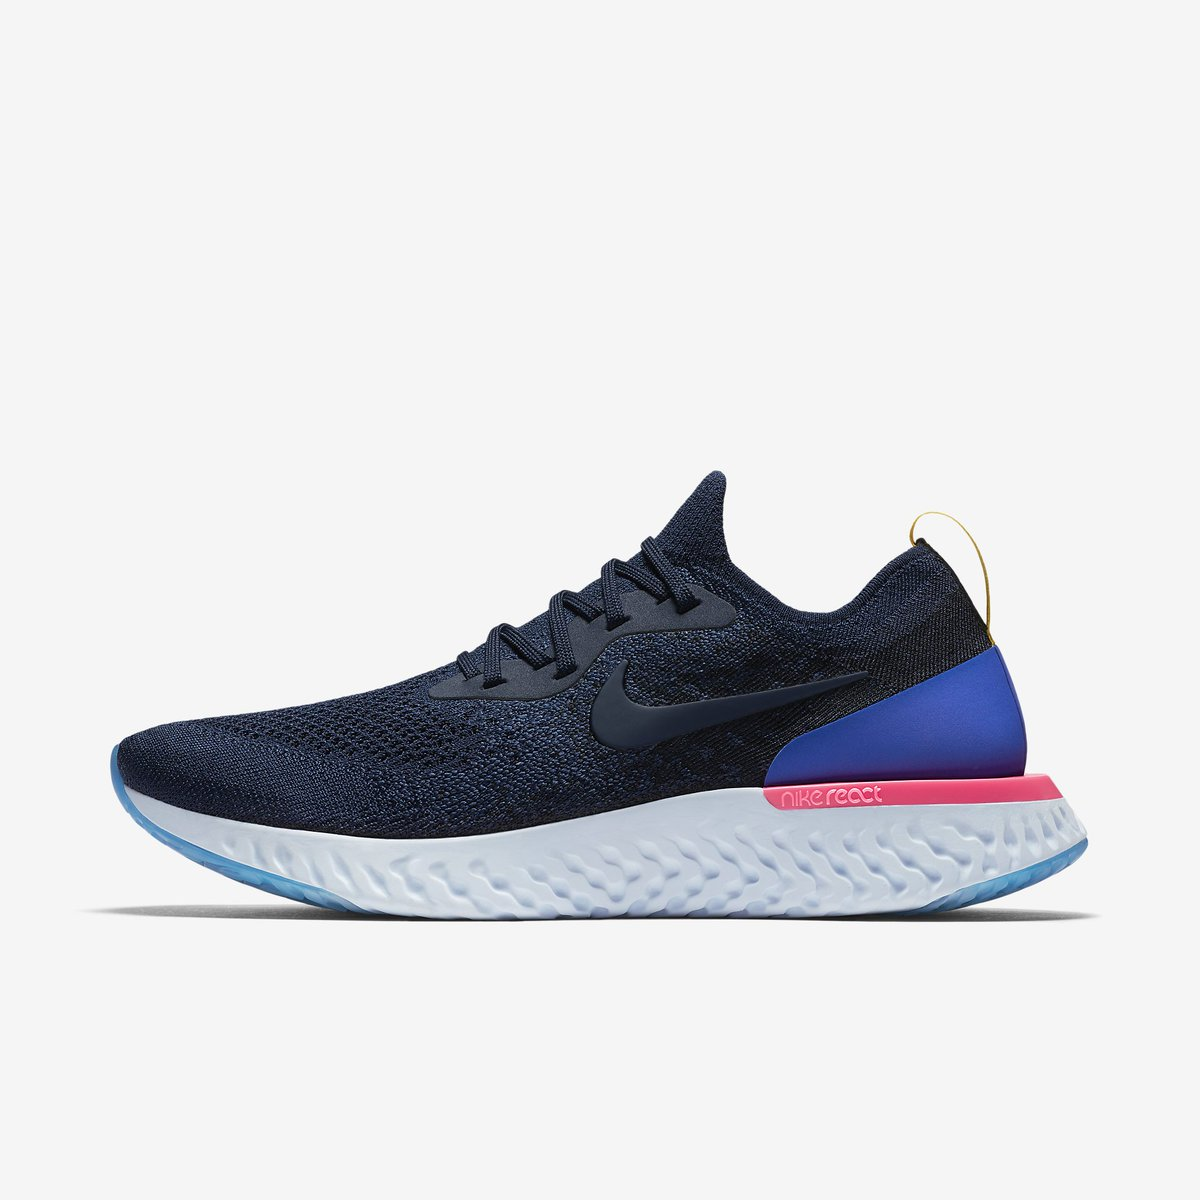 cb5f5a61450bf Nike Epic React Flyknit on Eastbay with FREE shipping Navy -   https   go.j23app.com 6kf White -  https   go.j23app.com 6kf  refresh at  9 59am ...